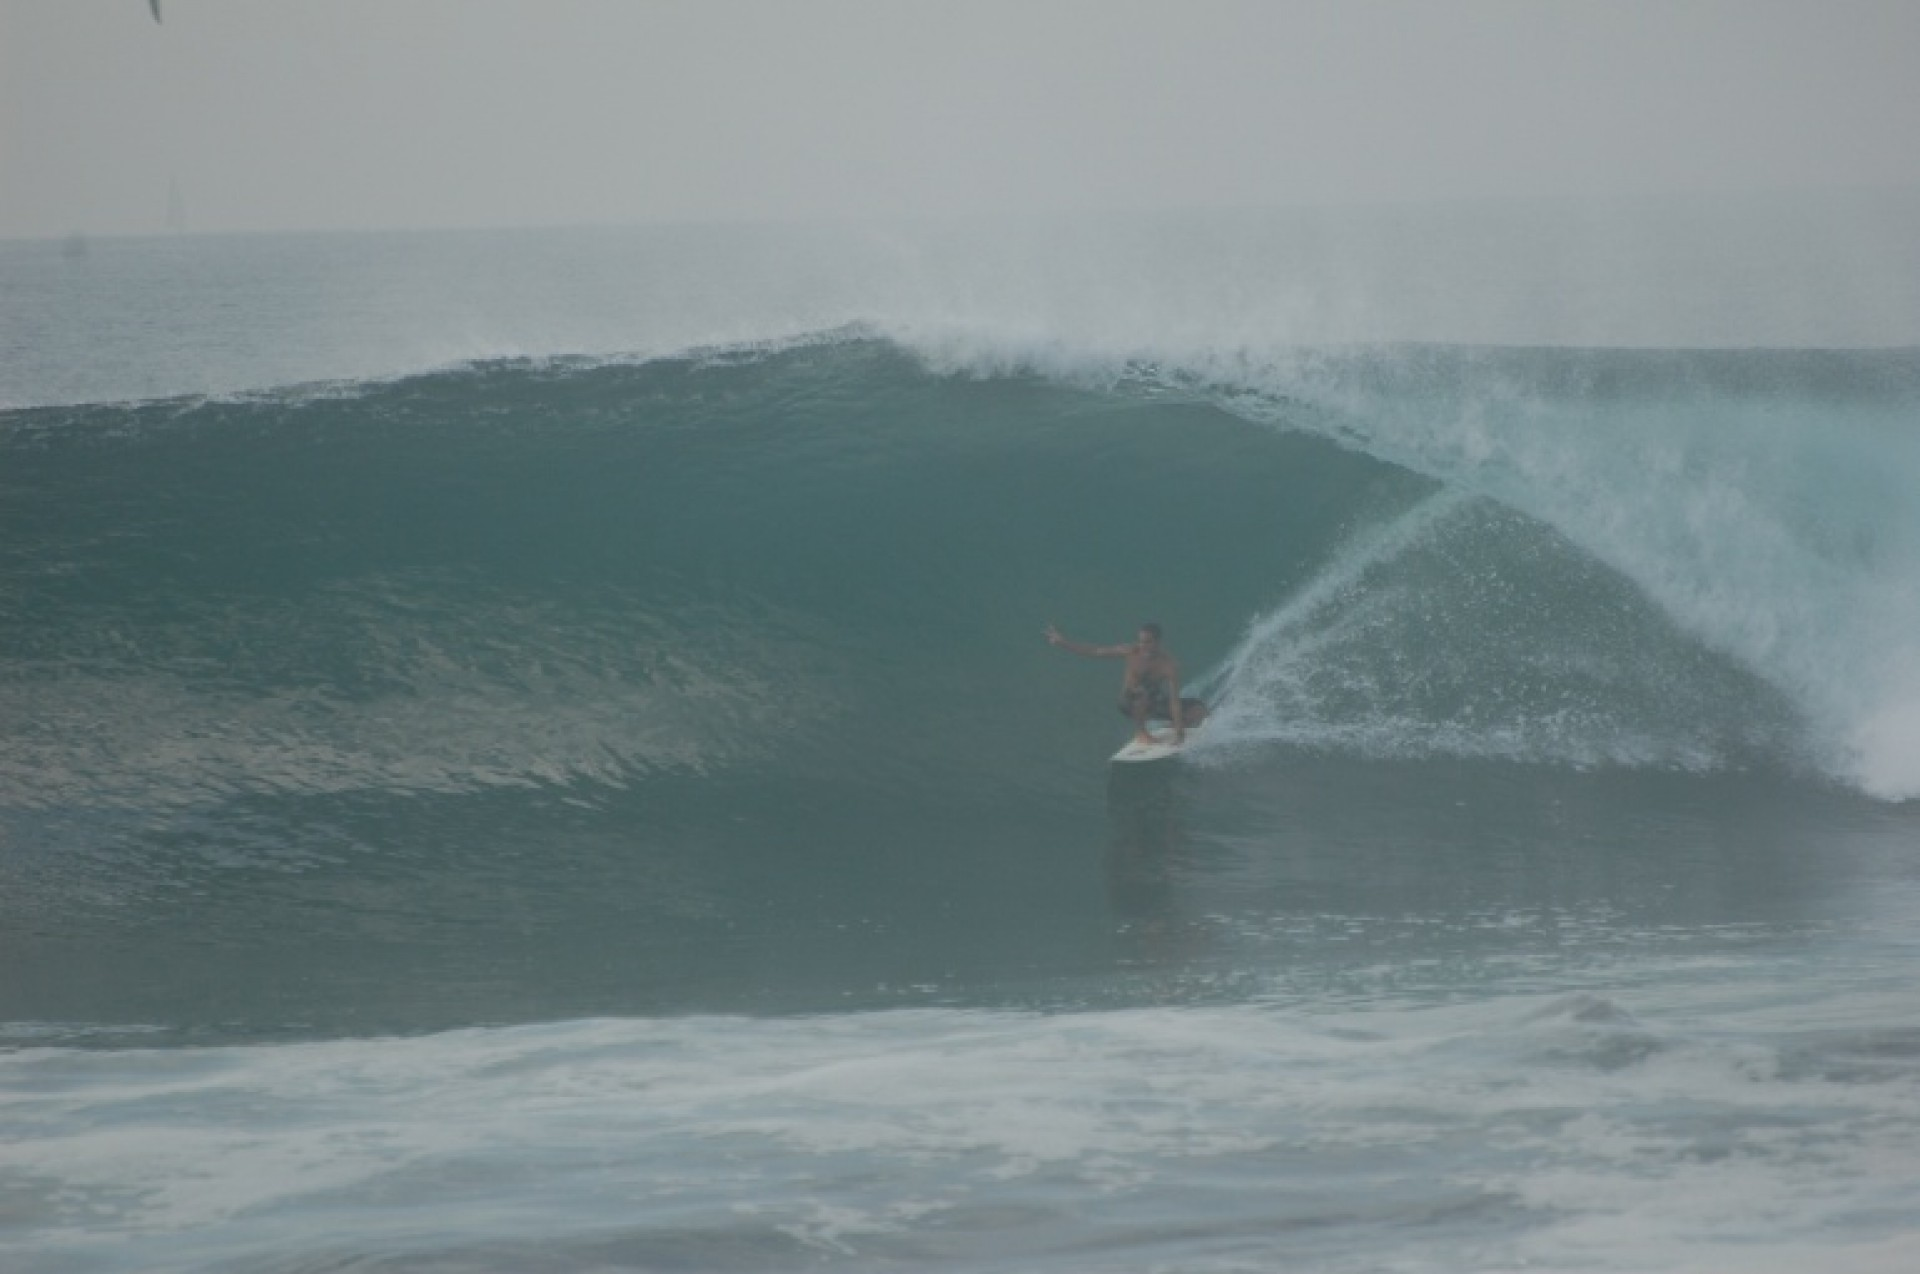 Global Surf Guatemala Surf Camp and School's photo of Sipacate